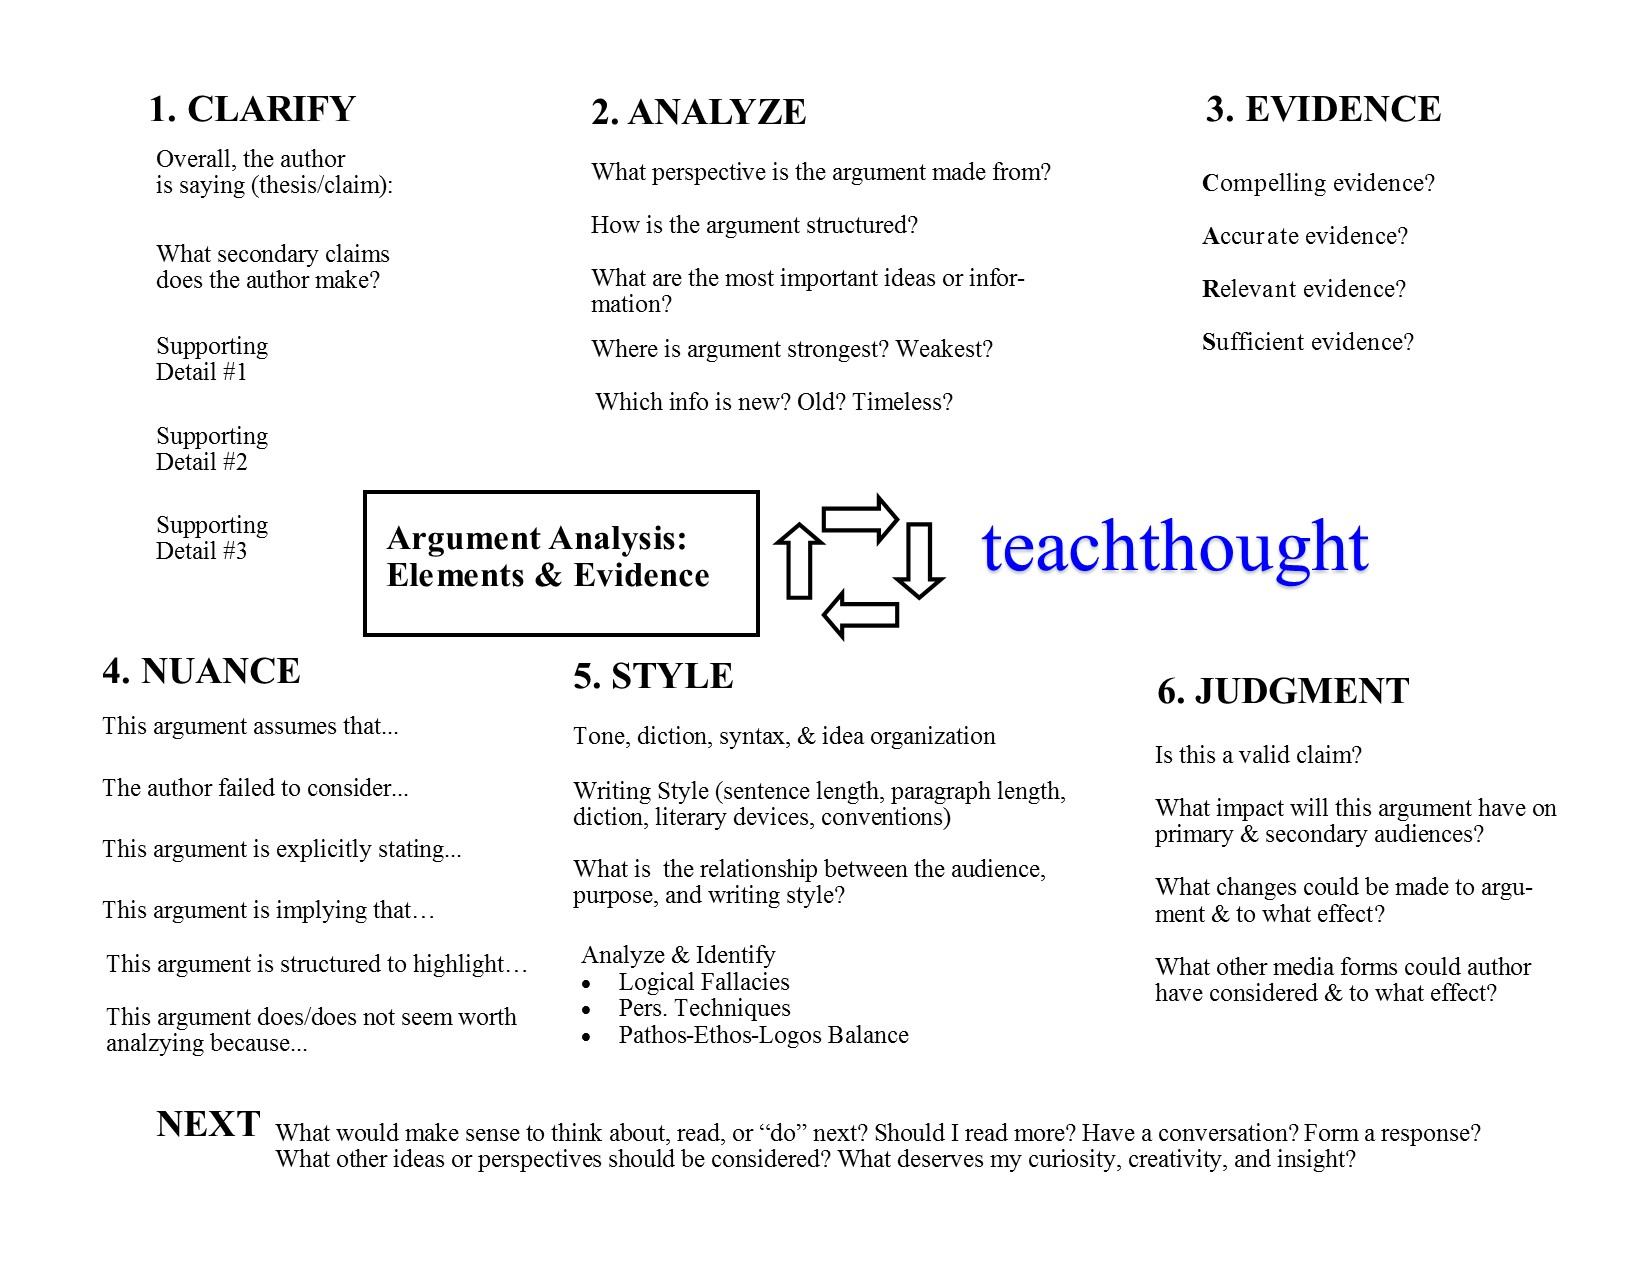 a 6 step process for teaching argument analysis